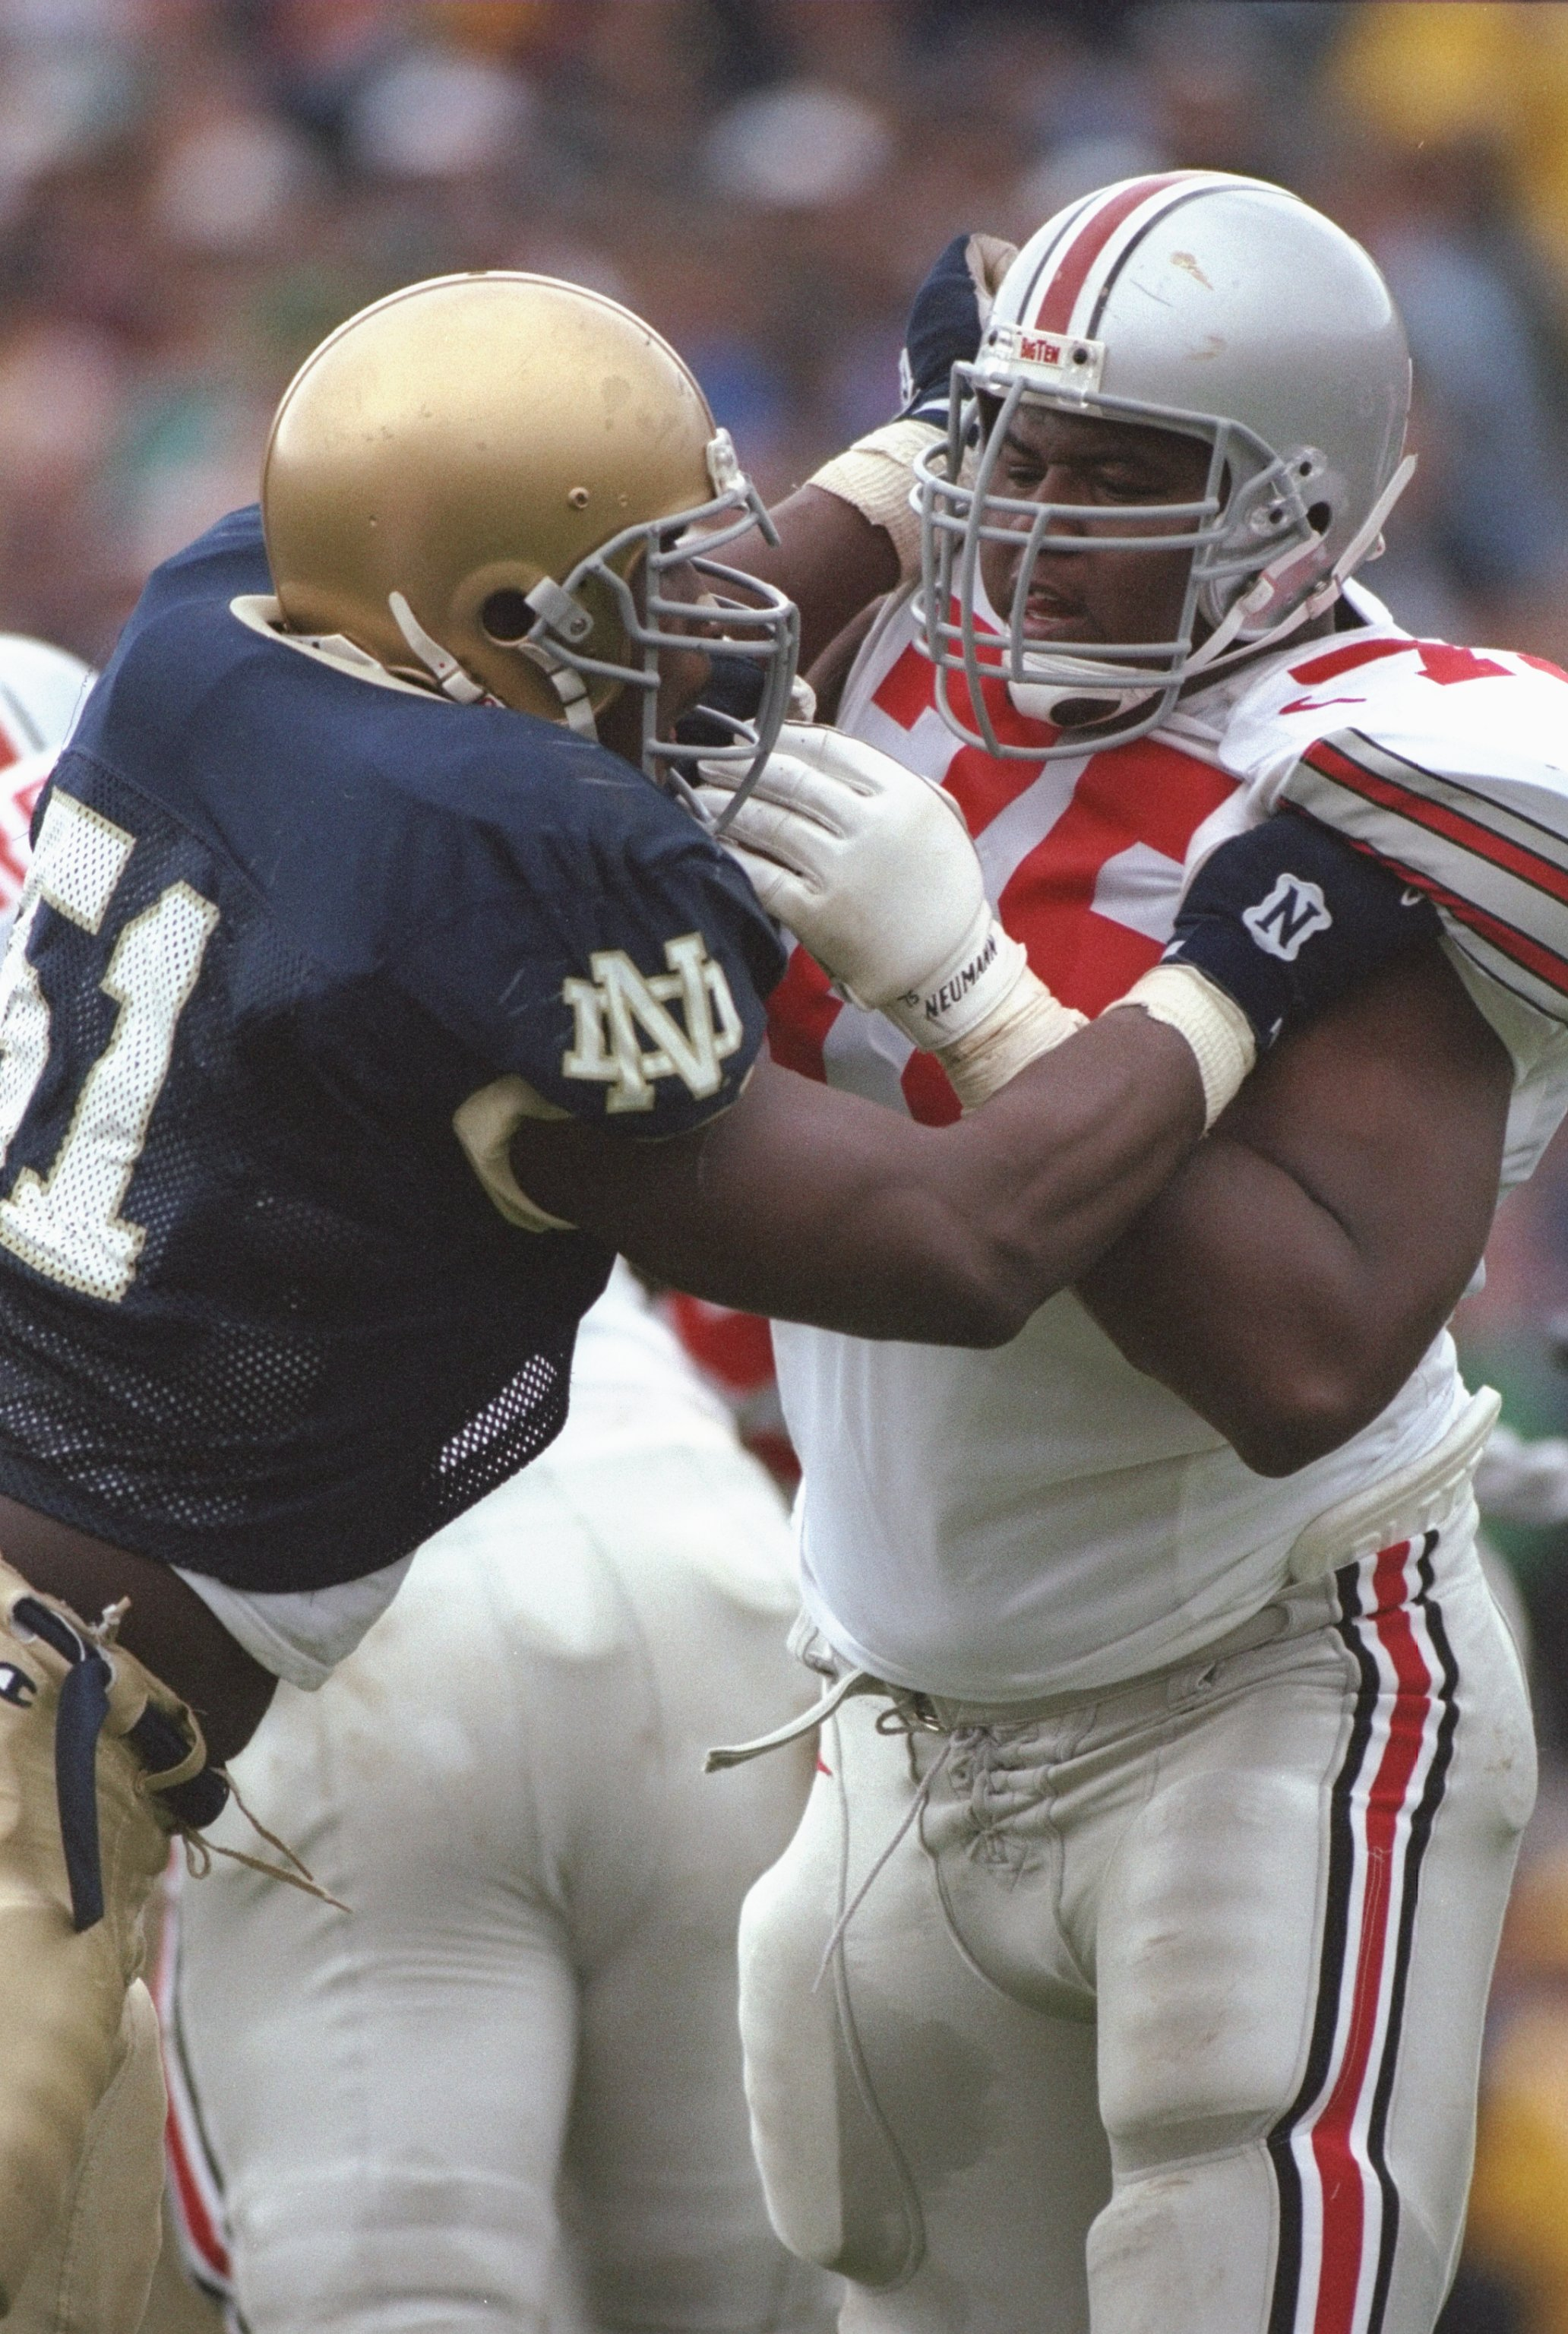 28 Sep 1996: Offensive lineman Orlando Pace #75 of the Ohio State Buckeye''s battles with Melvin Dansby #51 of the Notre Dame Fighting Irish while attempting to land a block during a play in the Buckeye''s 29-16 victory over the Irish at Notre Dame Stadiu